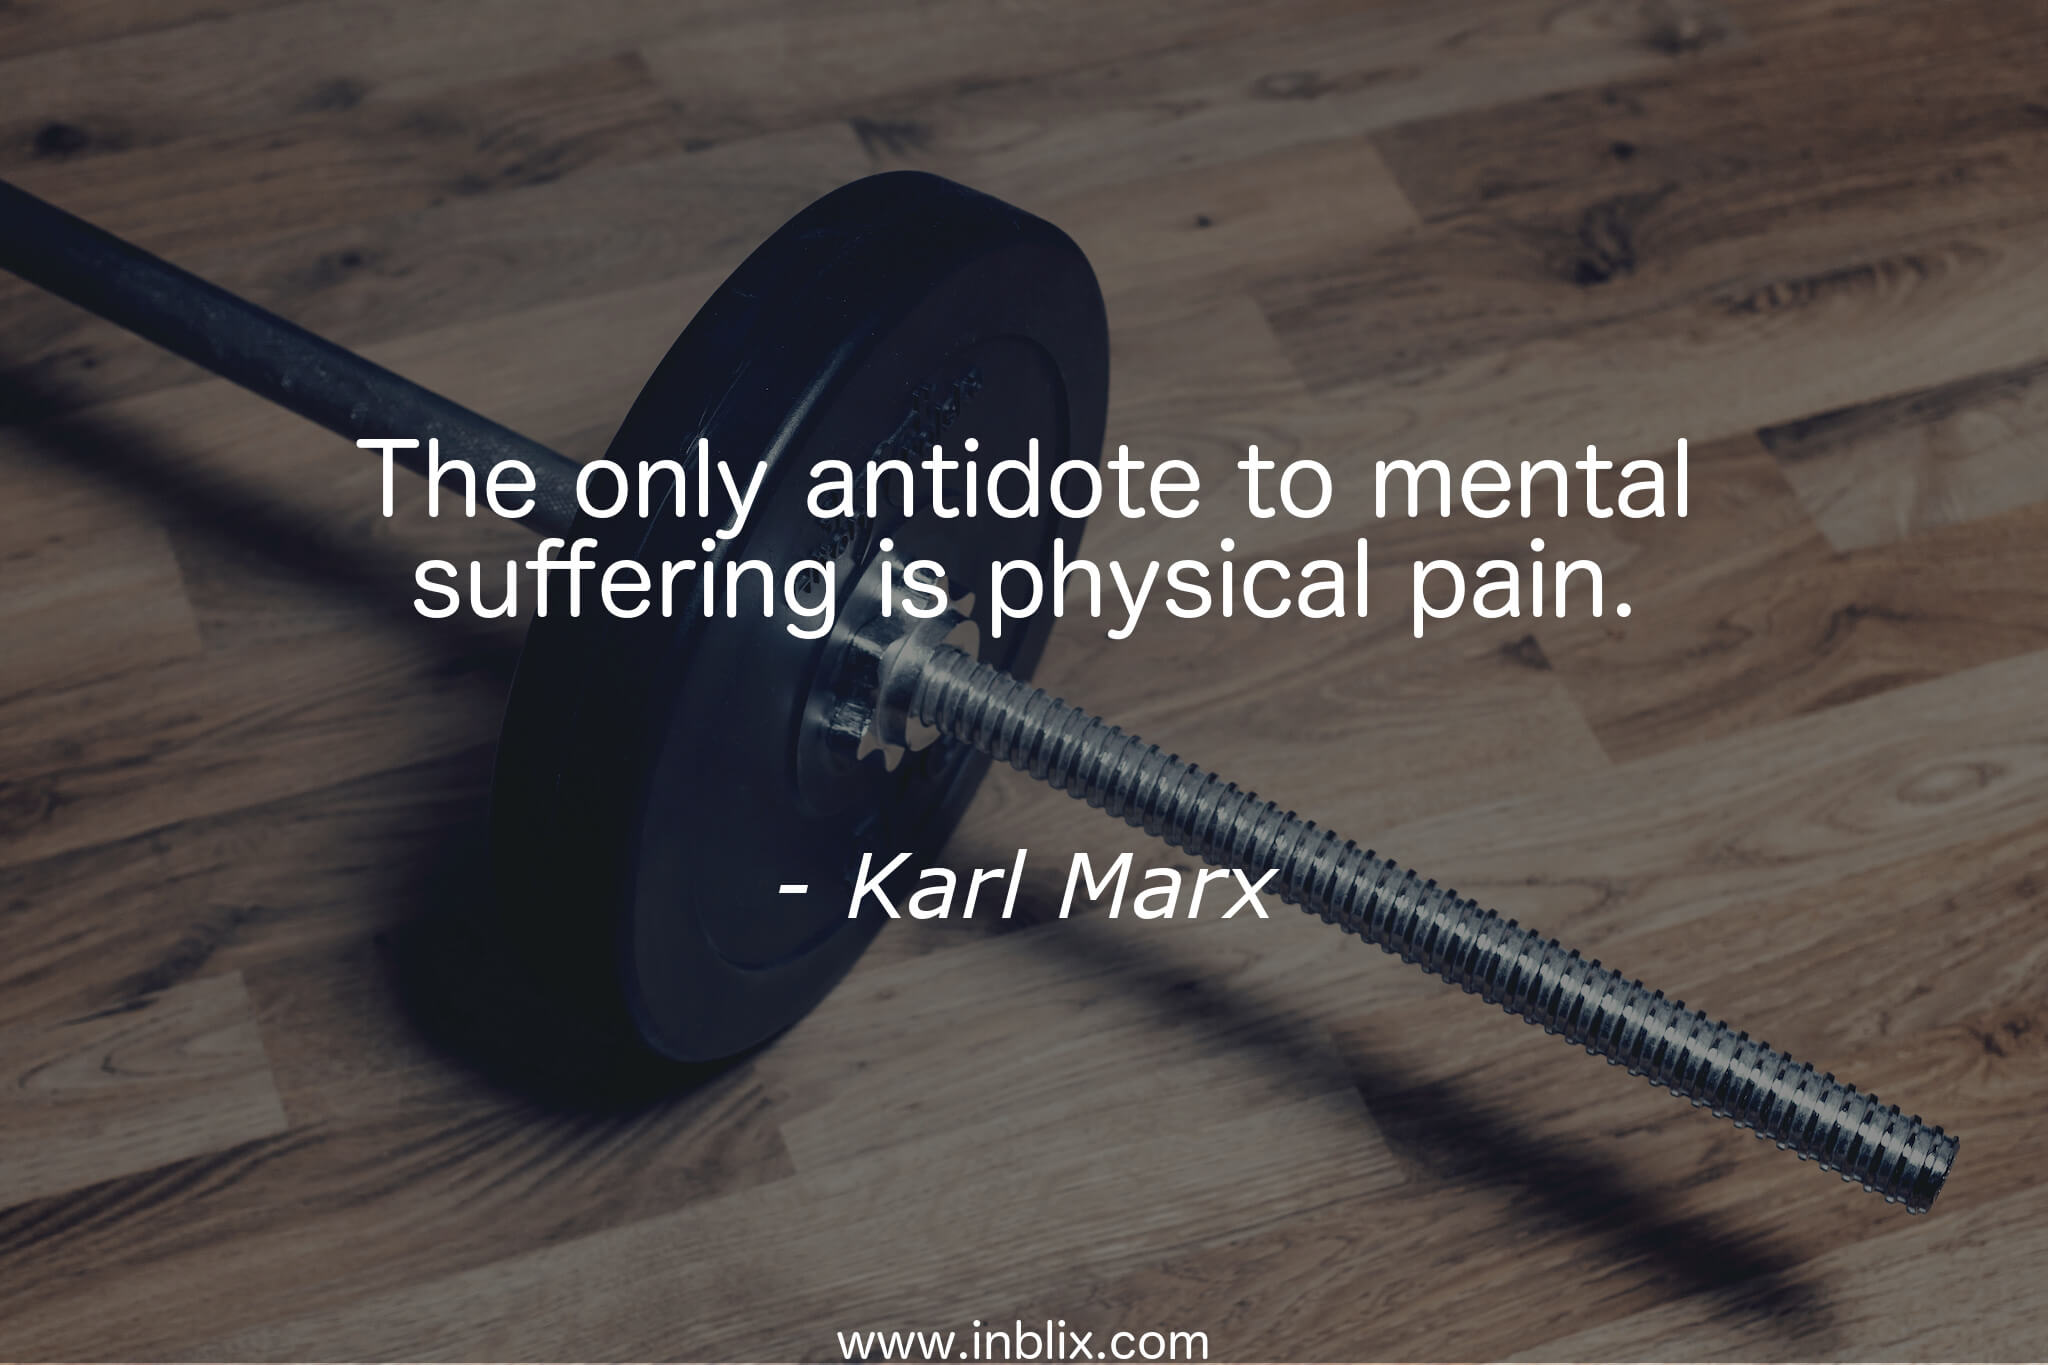 The only antidote to mental suffering is physical pain.